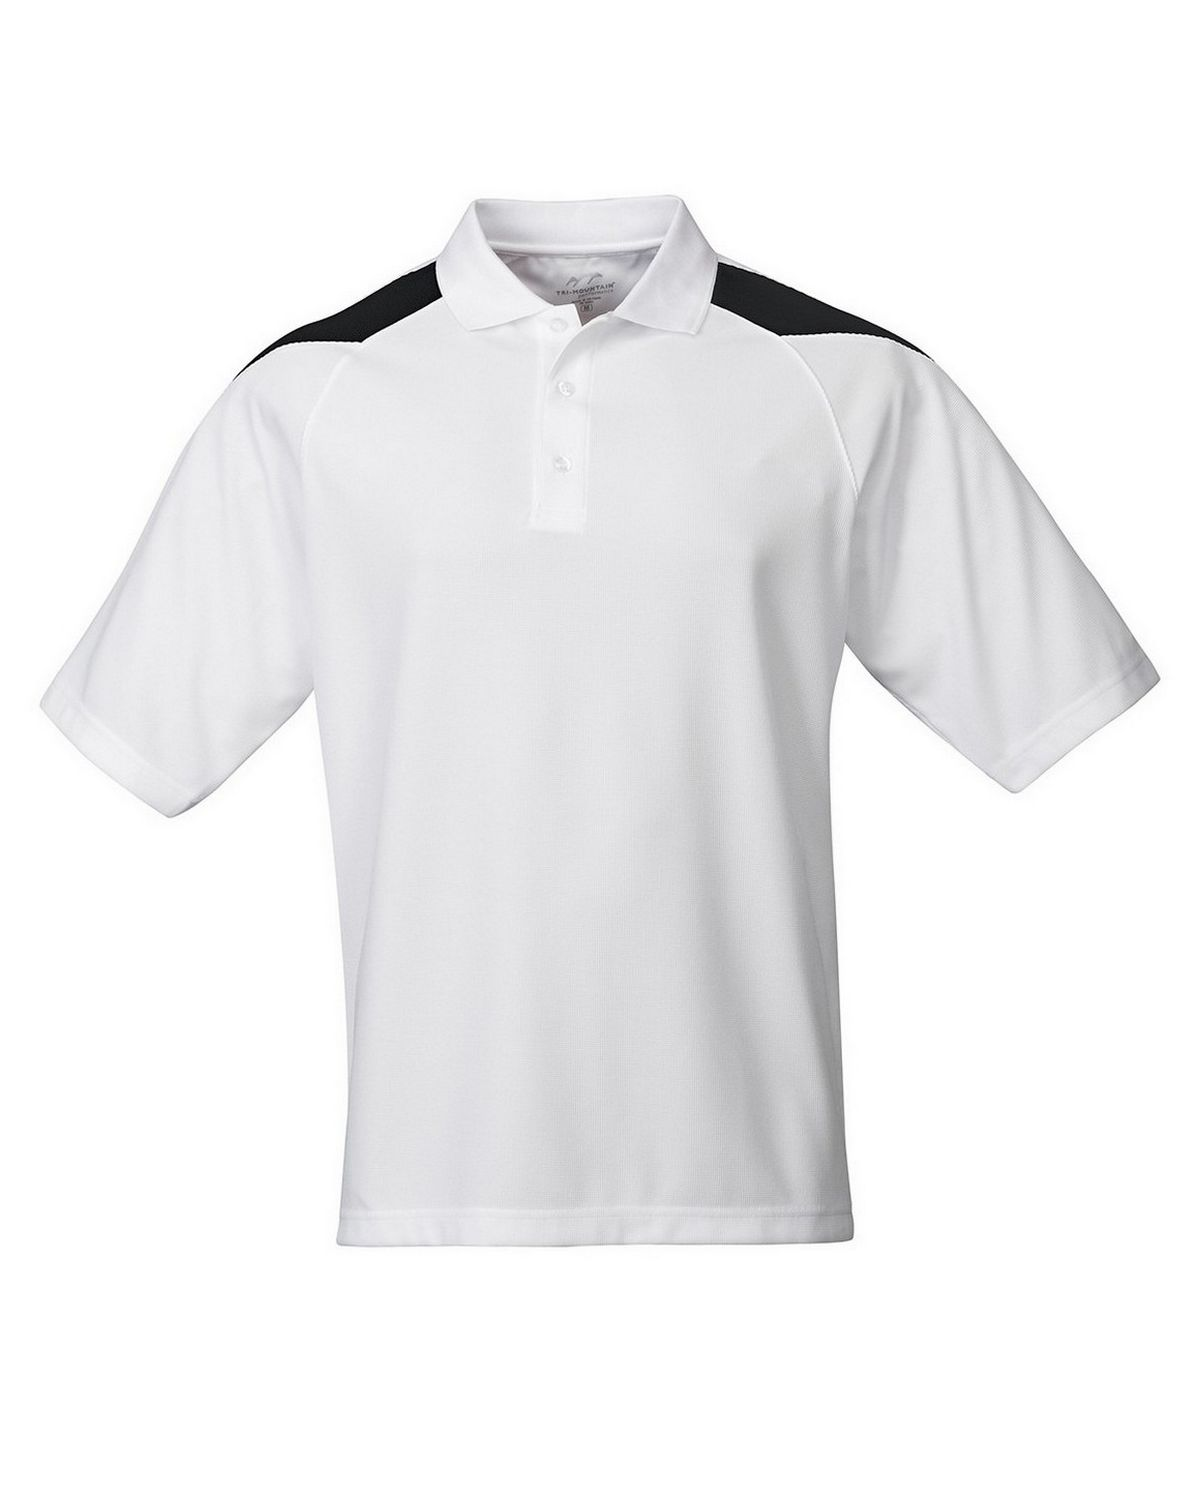 Buy Tri Mountain Performance 207 Mens Knit Polo Shirt Raglan Sleeve